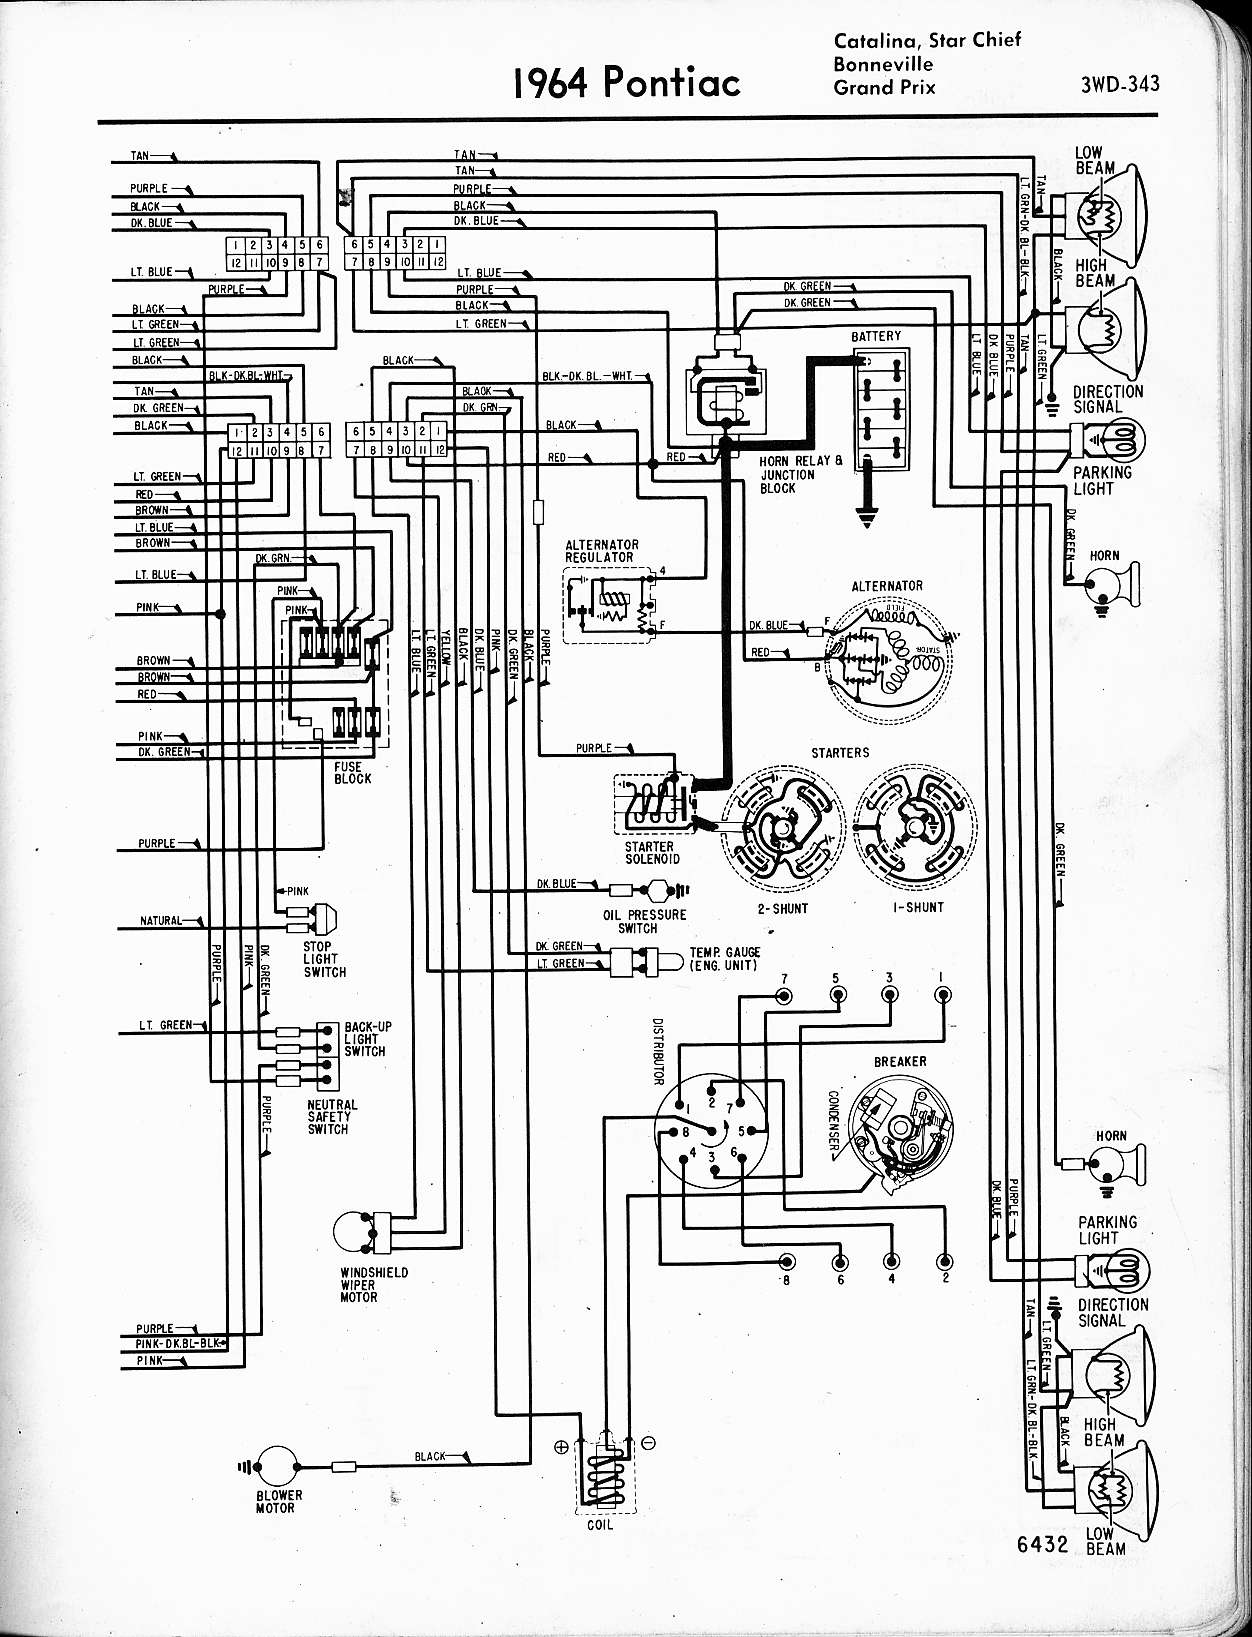 1968 Corvette Turn Signal Wiring Diagram Engine Harness Wallace Racing Diagrams Rh Wallaceracing Com Wiper Motor 1969